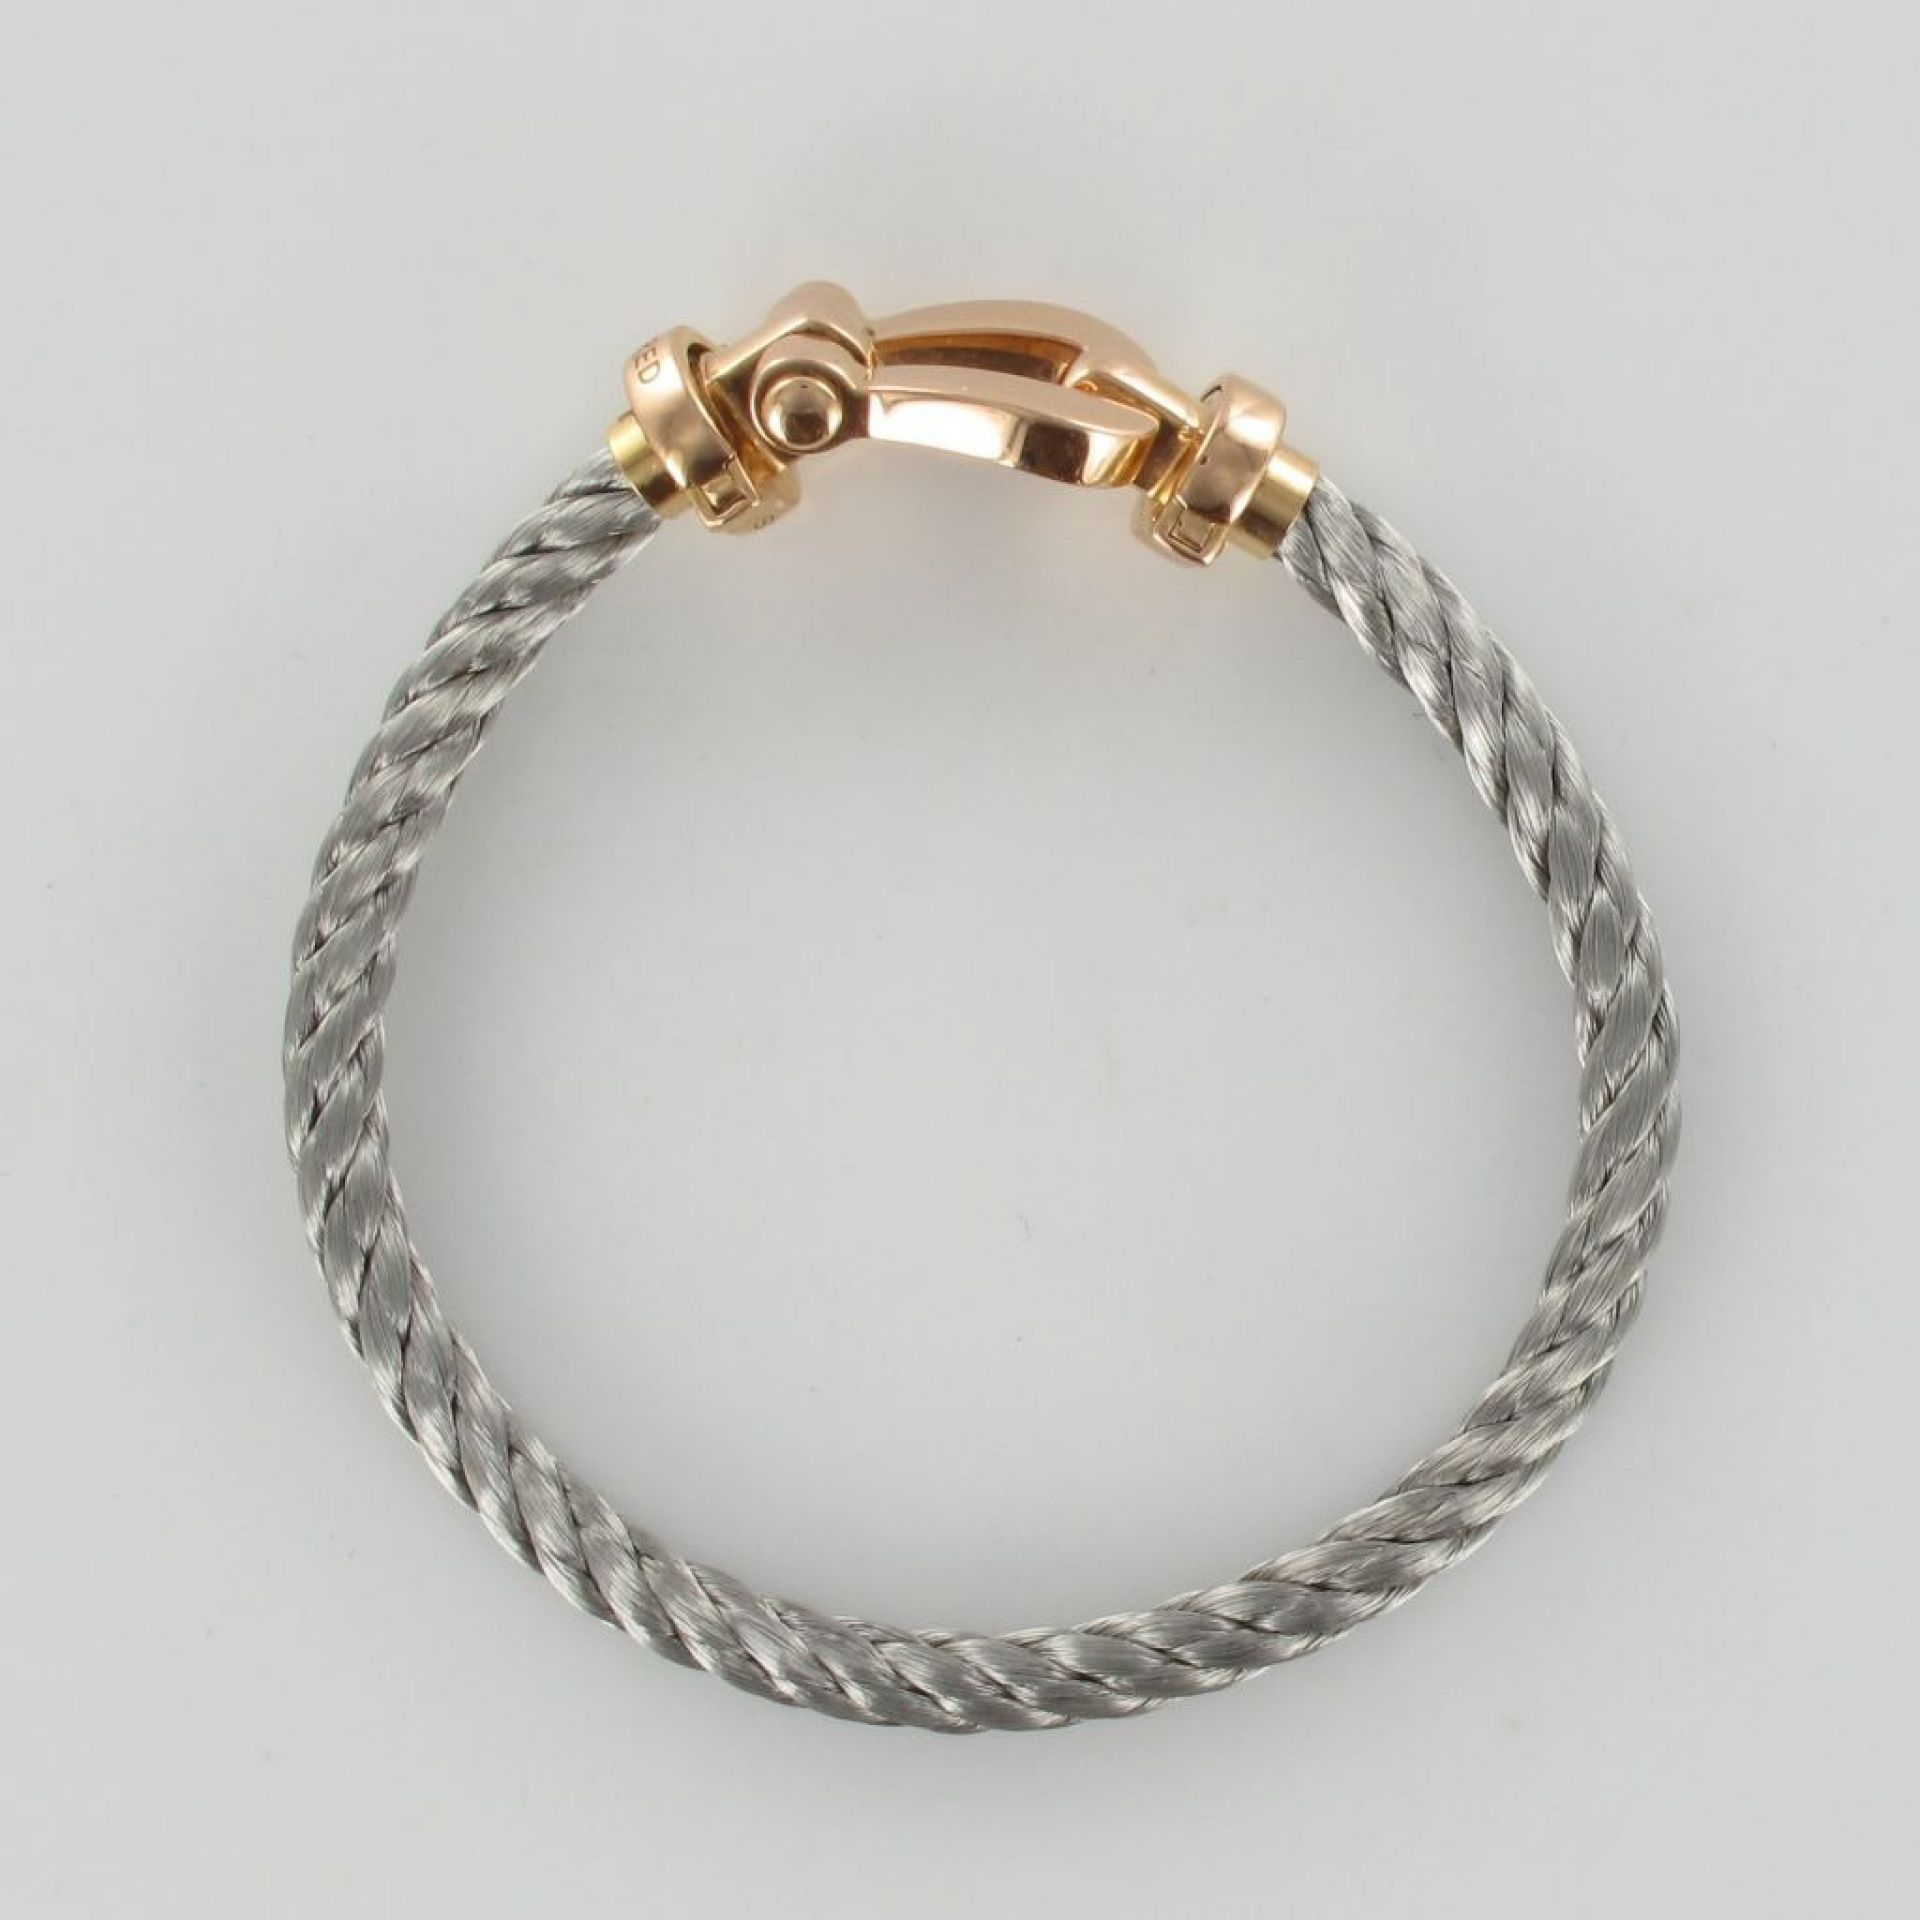 Fred Force 10 pink gold bracelet